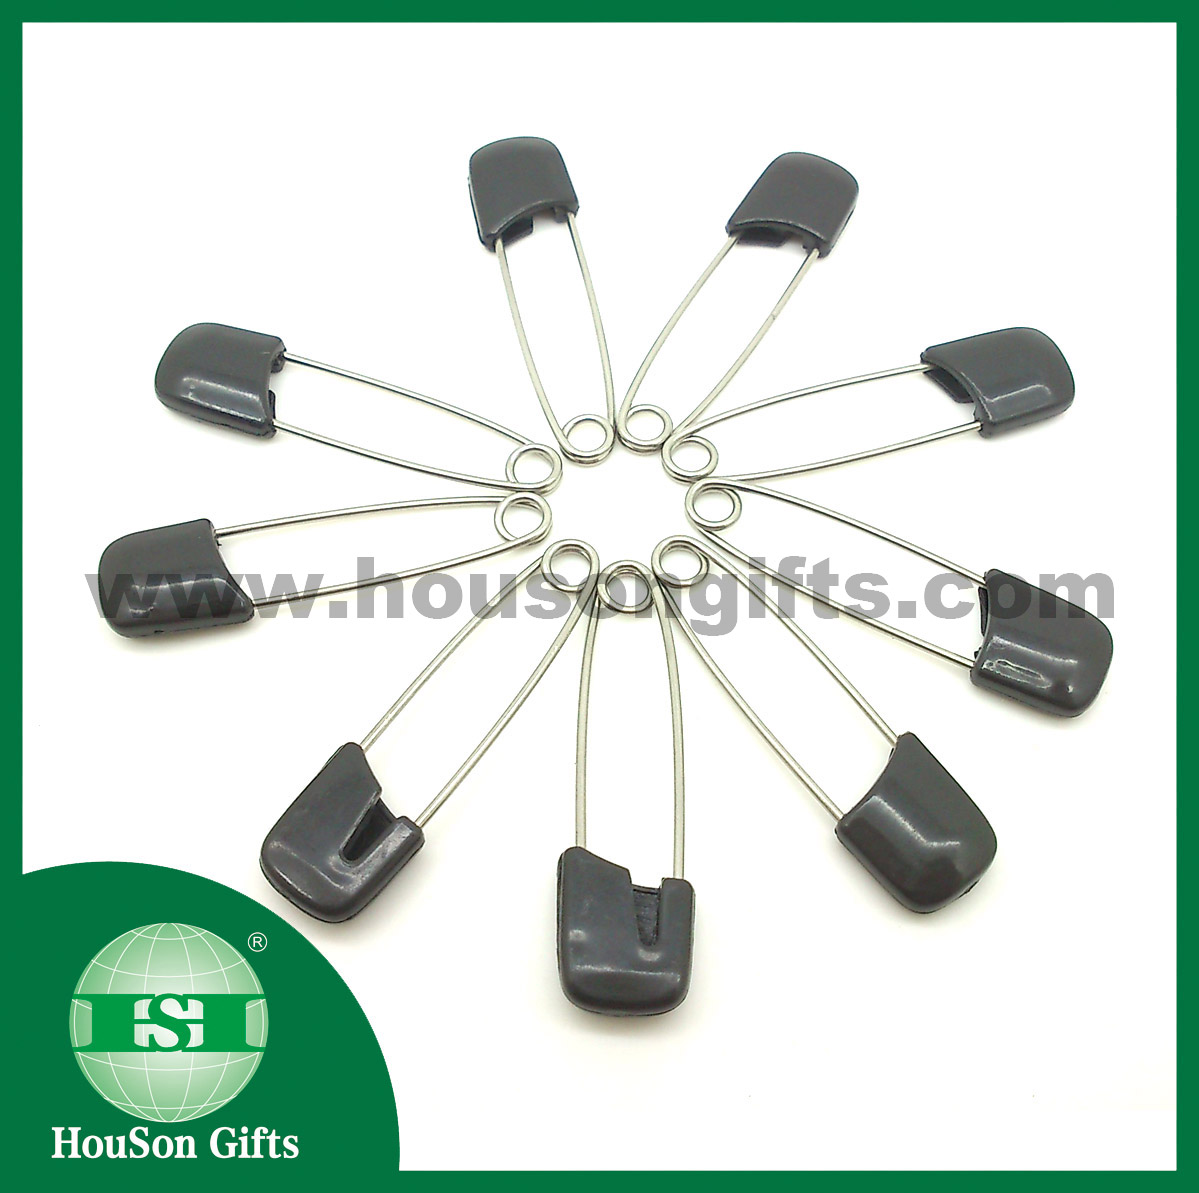 Black safety pins